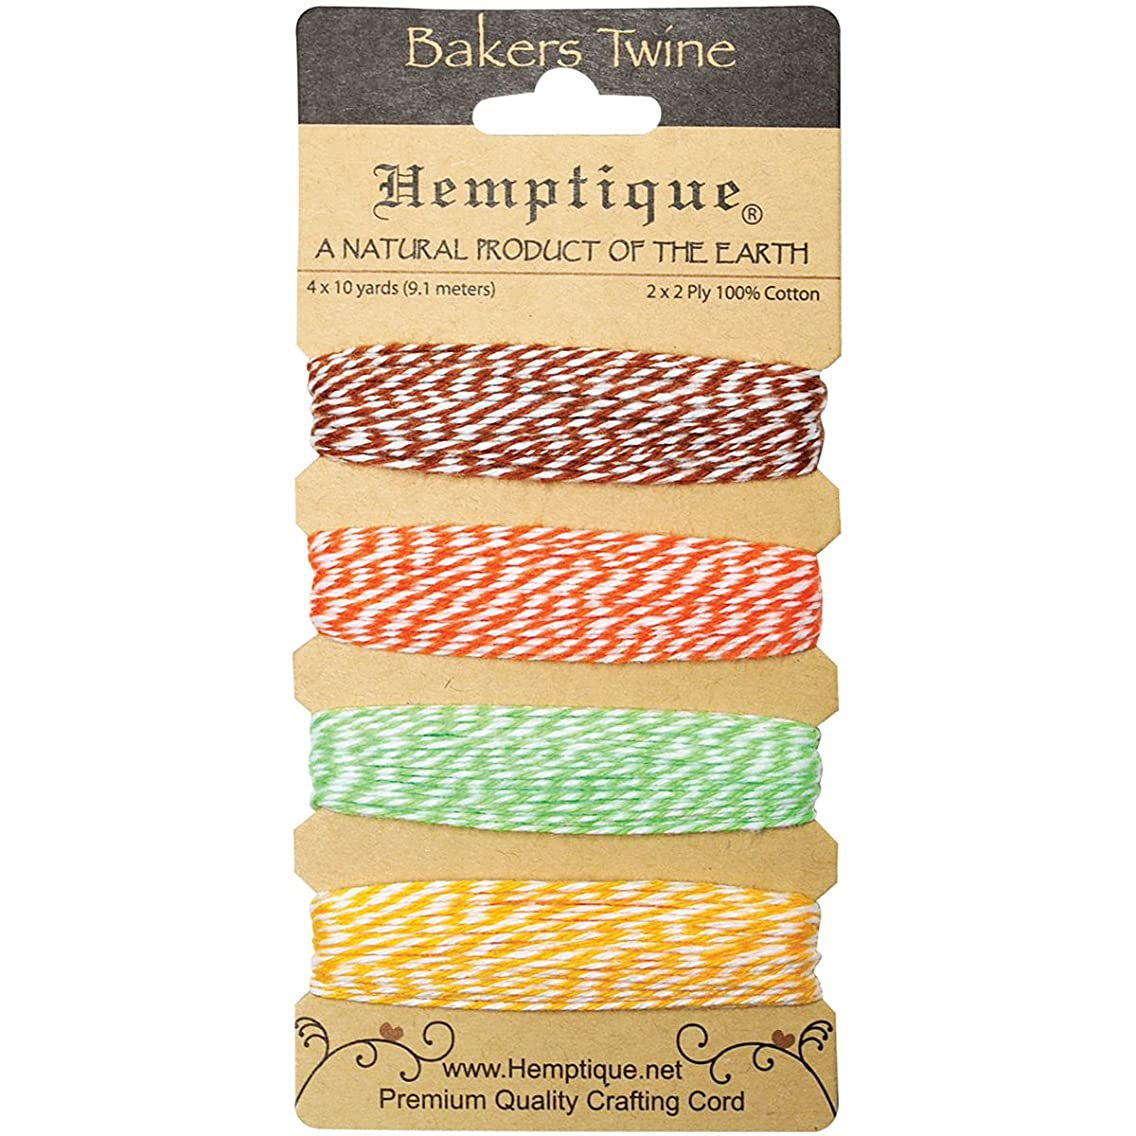 Hemptique BTC2-PIN Cotton Bakers 2-Ply Twine Card Set, Pineapple, 120-Feet